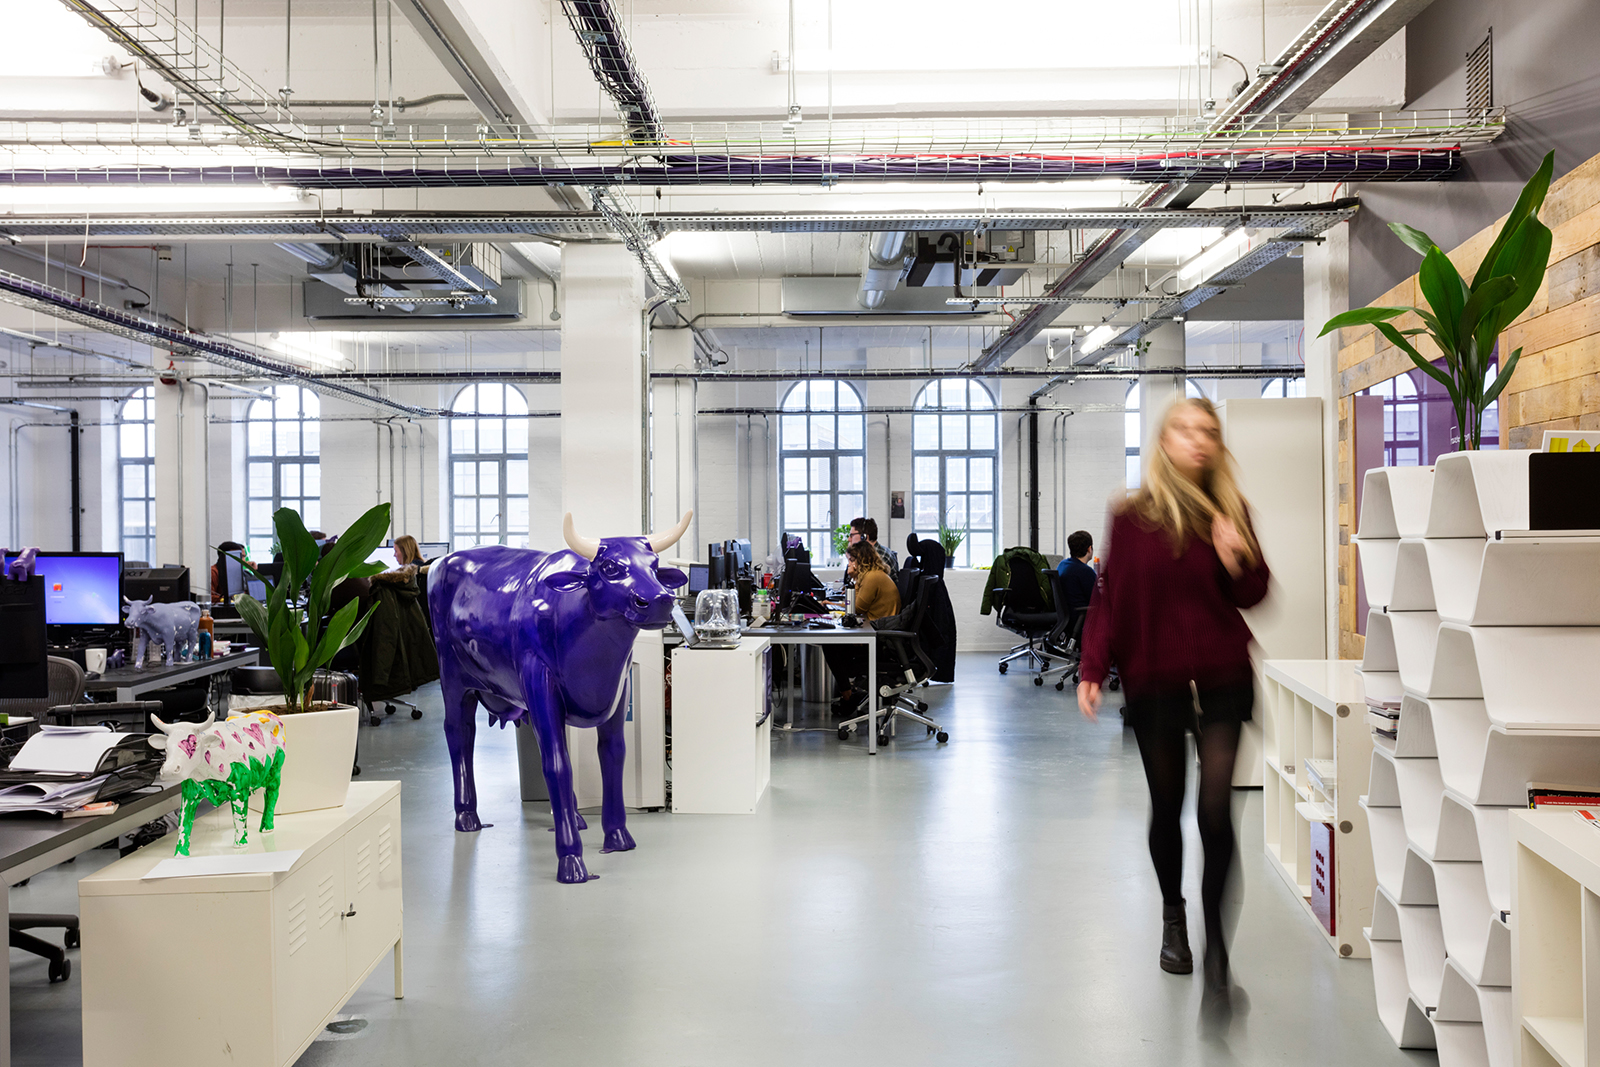 fetch-steak-london-office-10